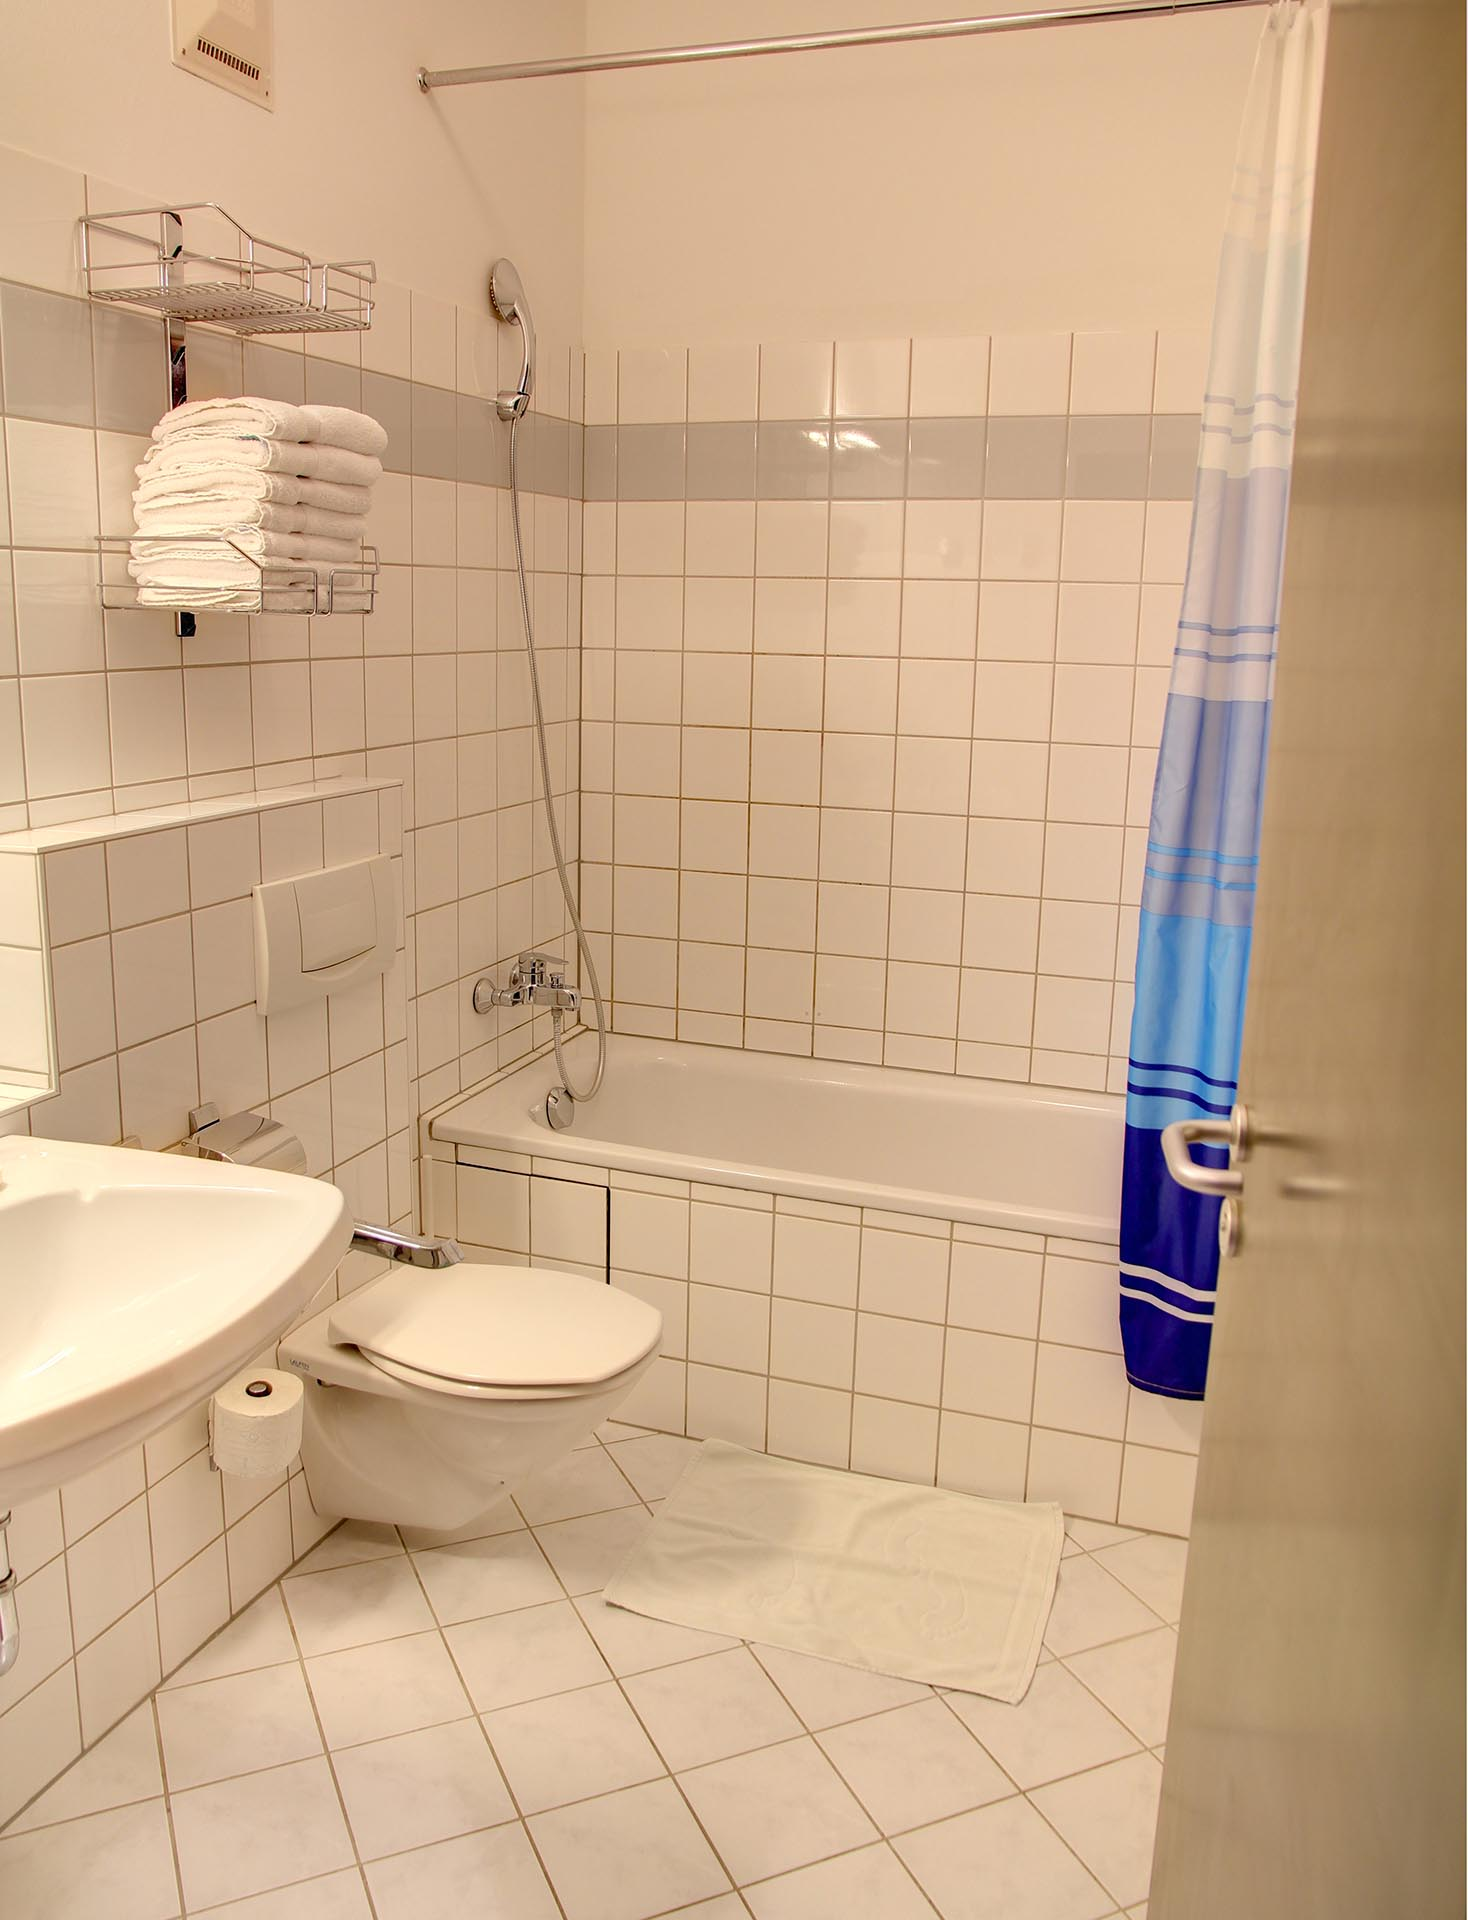 74living_serviced_business_apartments_apartment_16_ap16_hp_6 ·  74living_serviced_business_apartments_apartment_16_ap16_hp_1